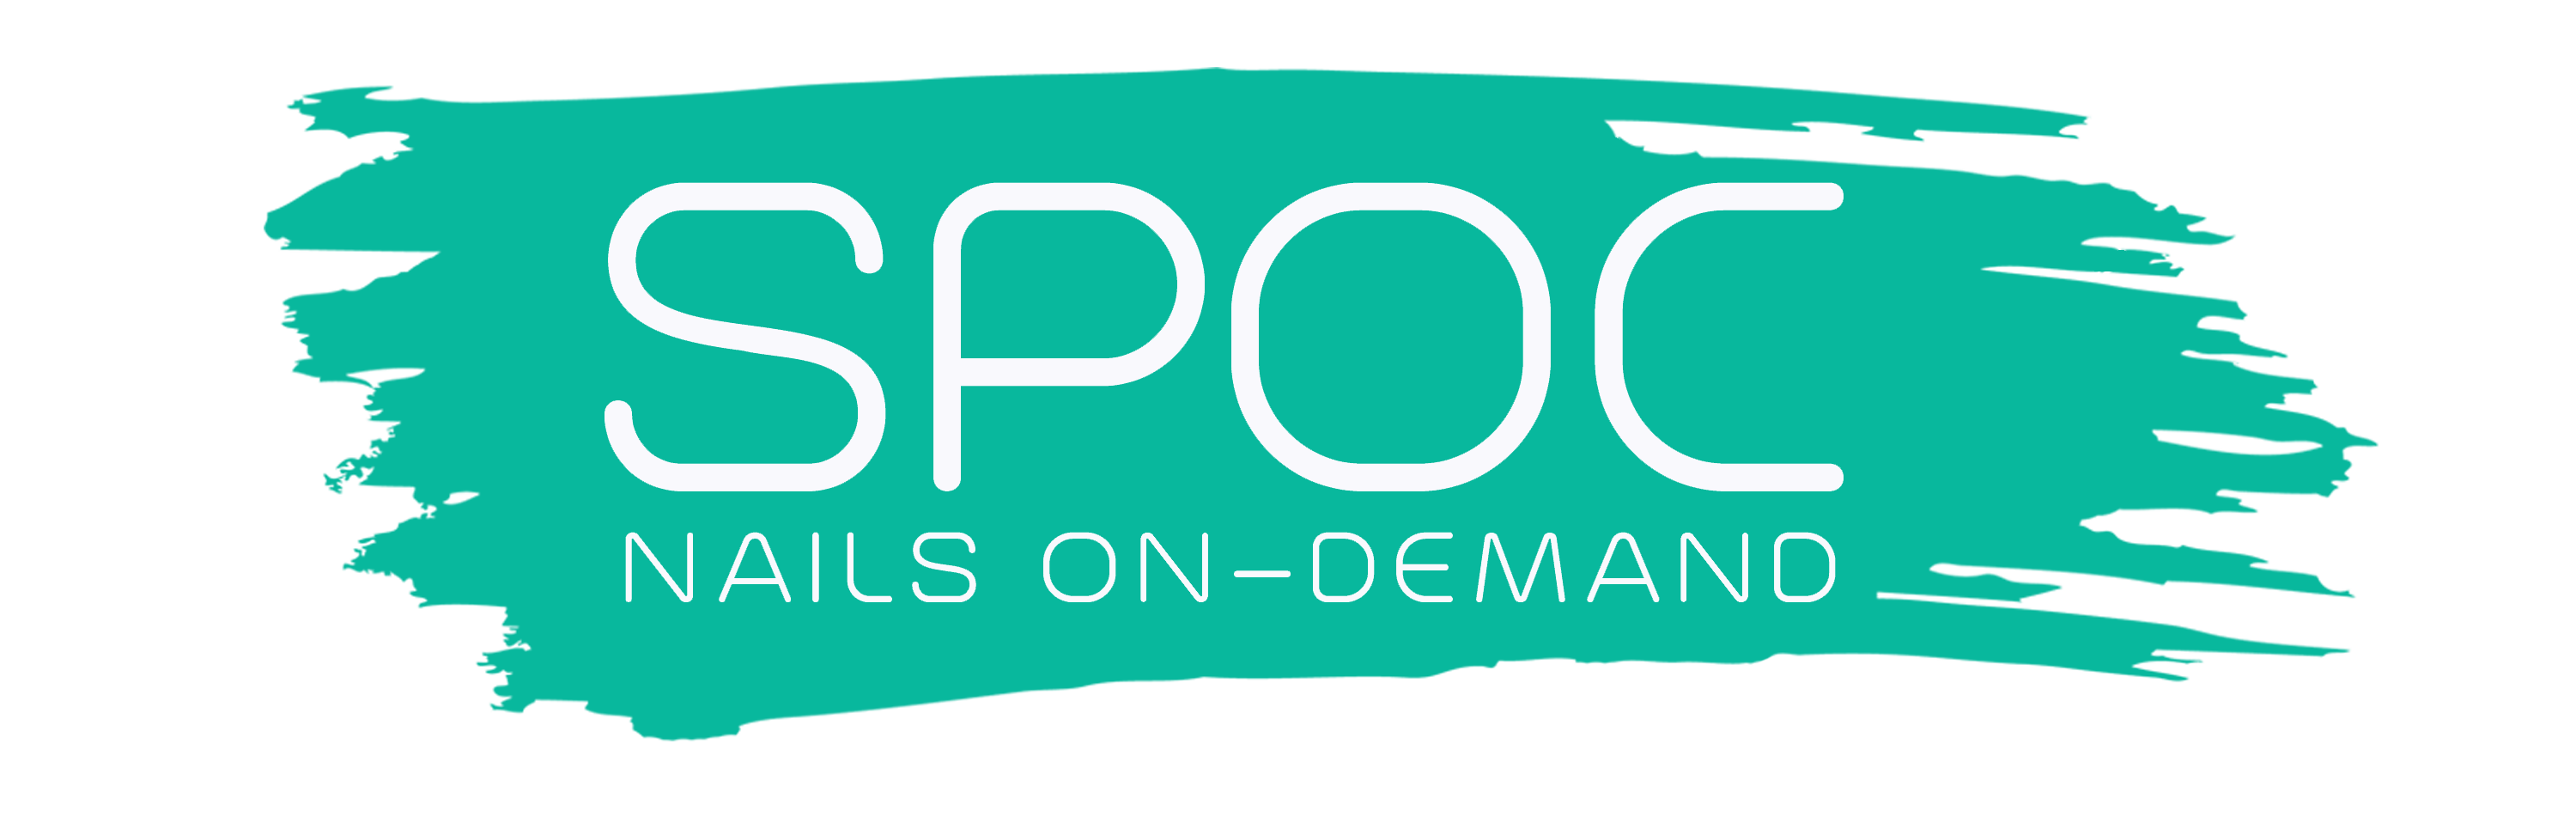 SPOC Nails On-Demand